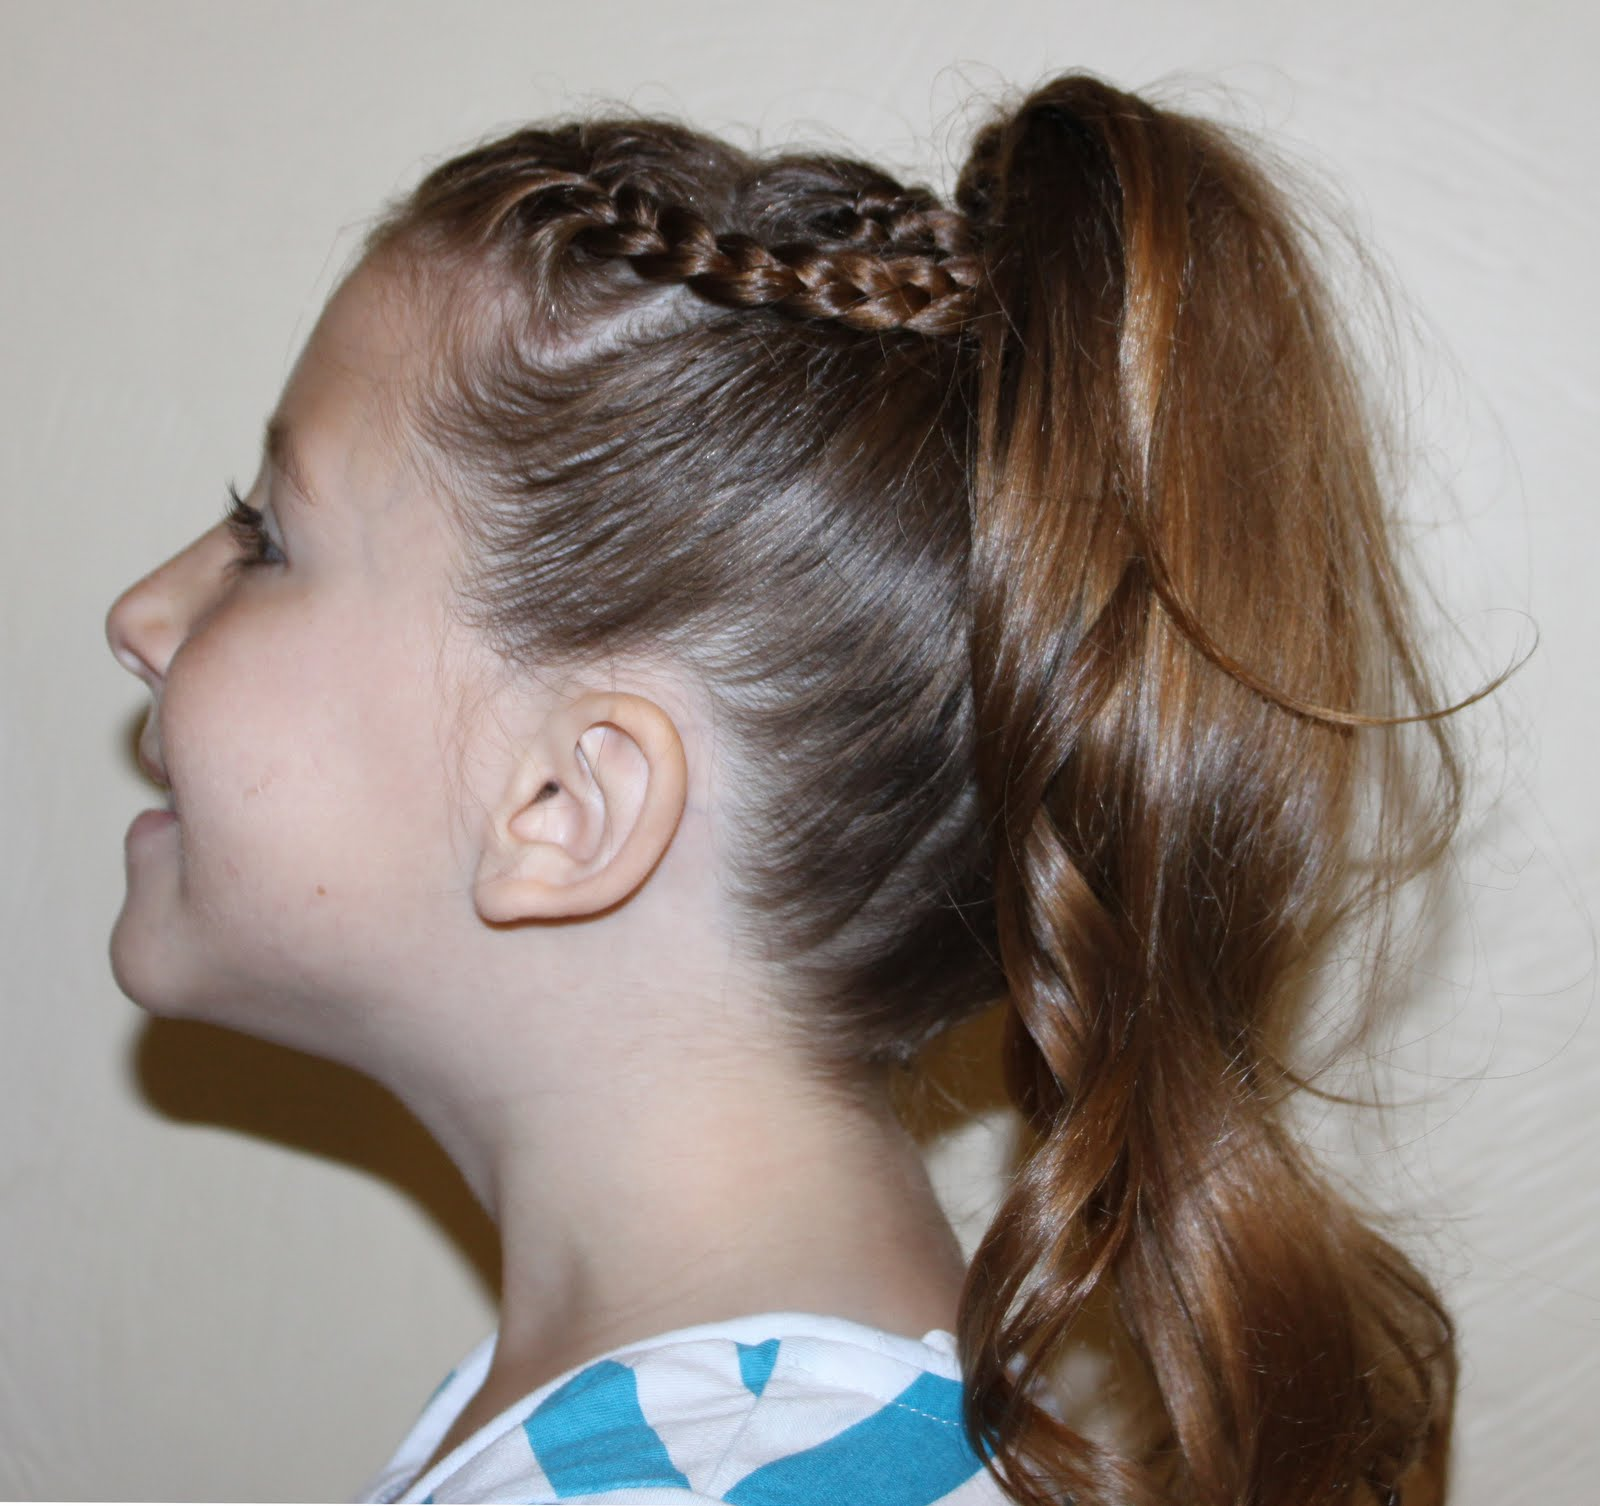 Hairstyles for Girls.. The Wright Hair: 2 Braids into Ponytail